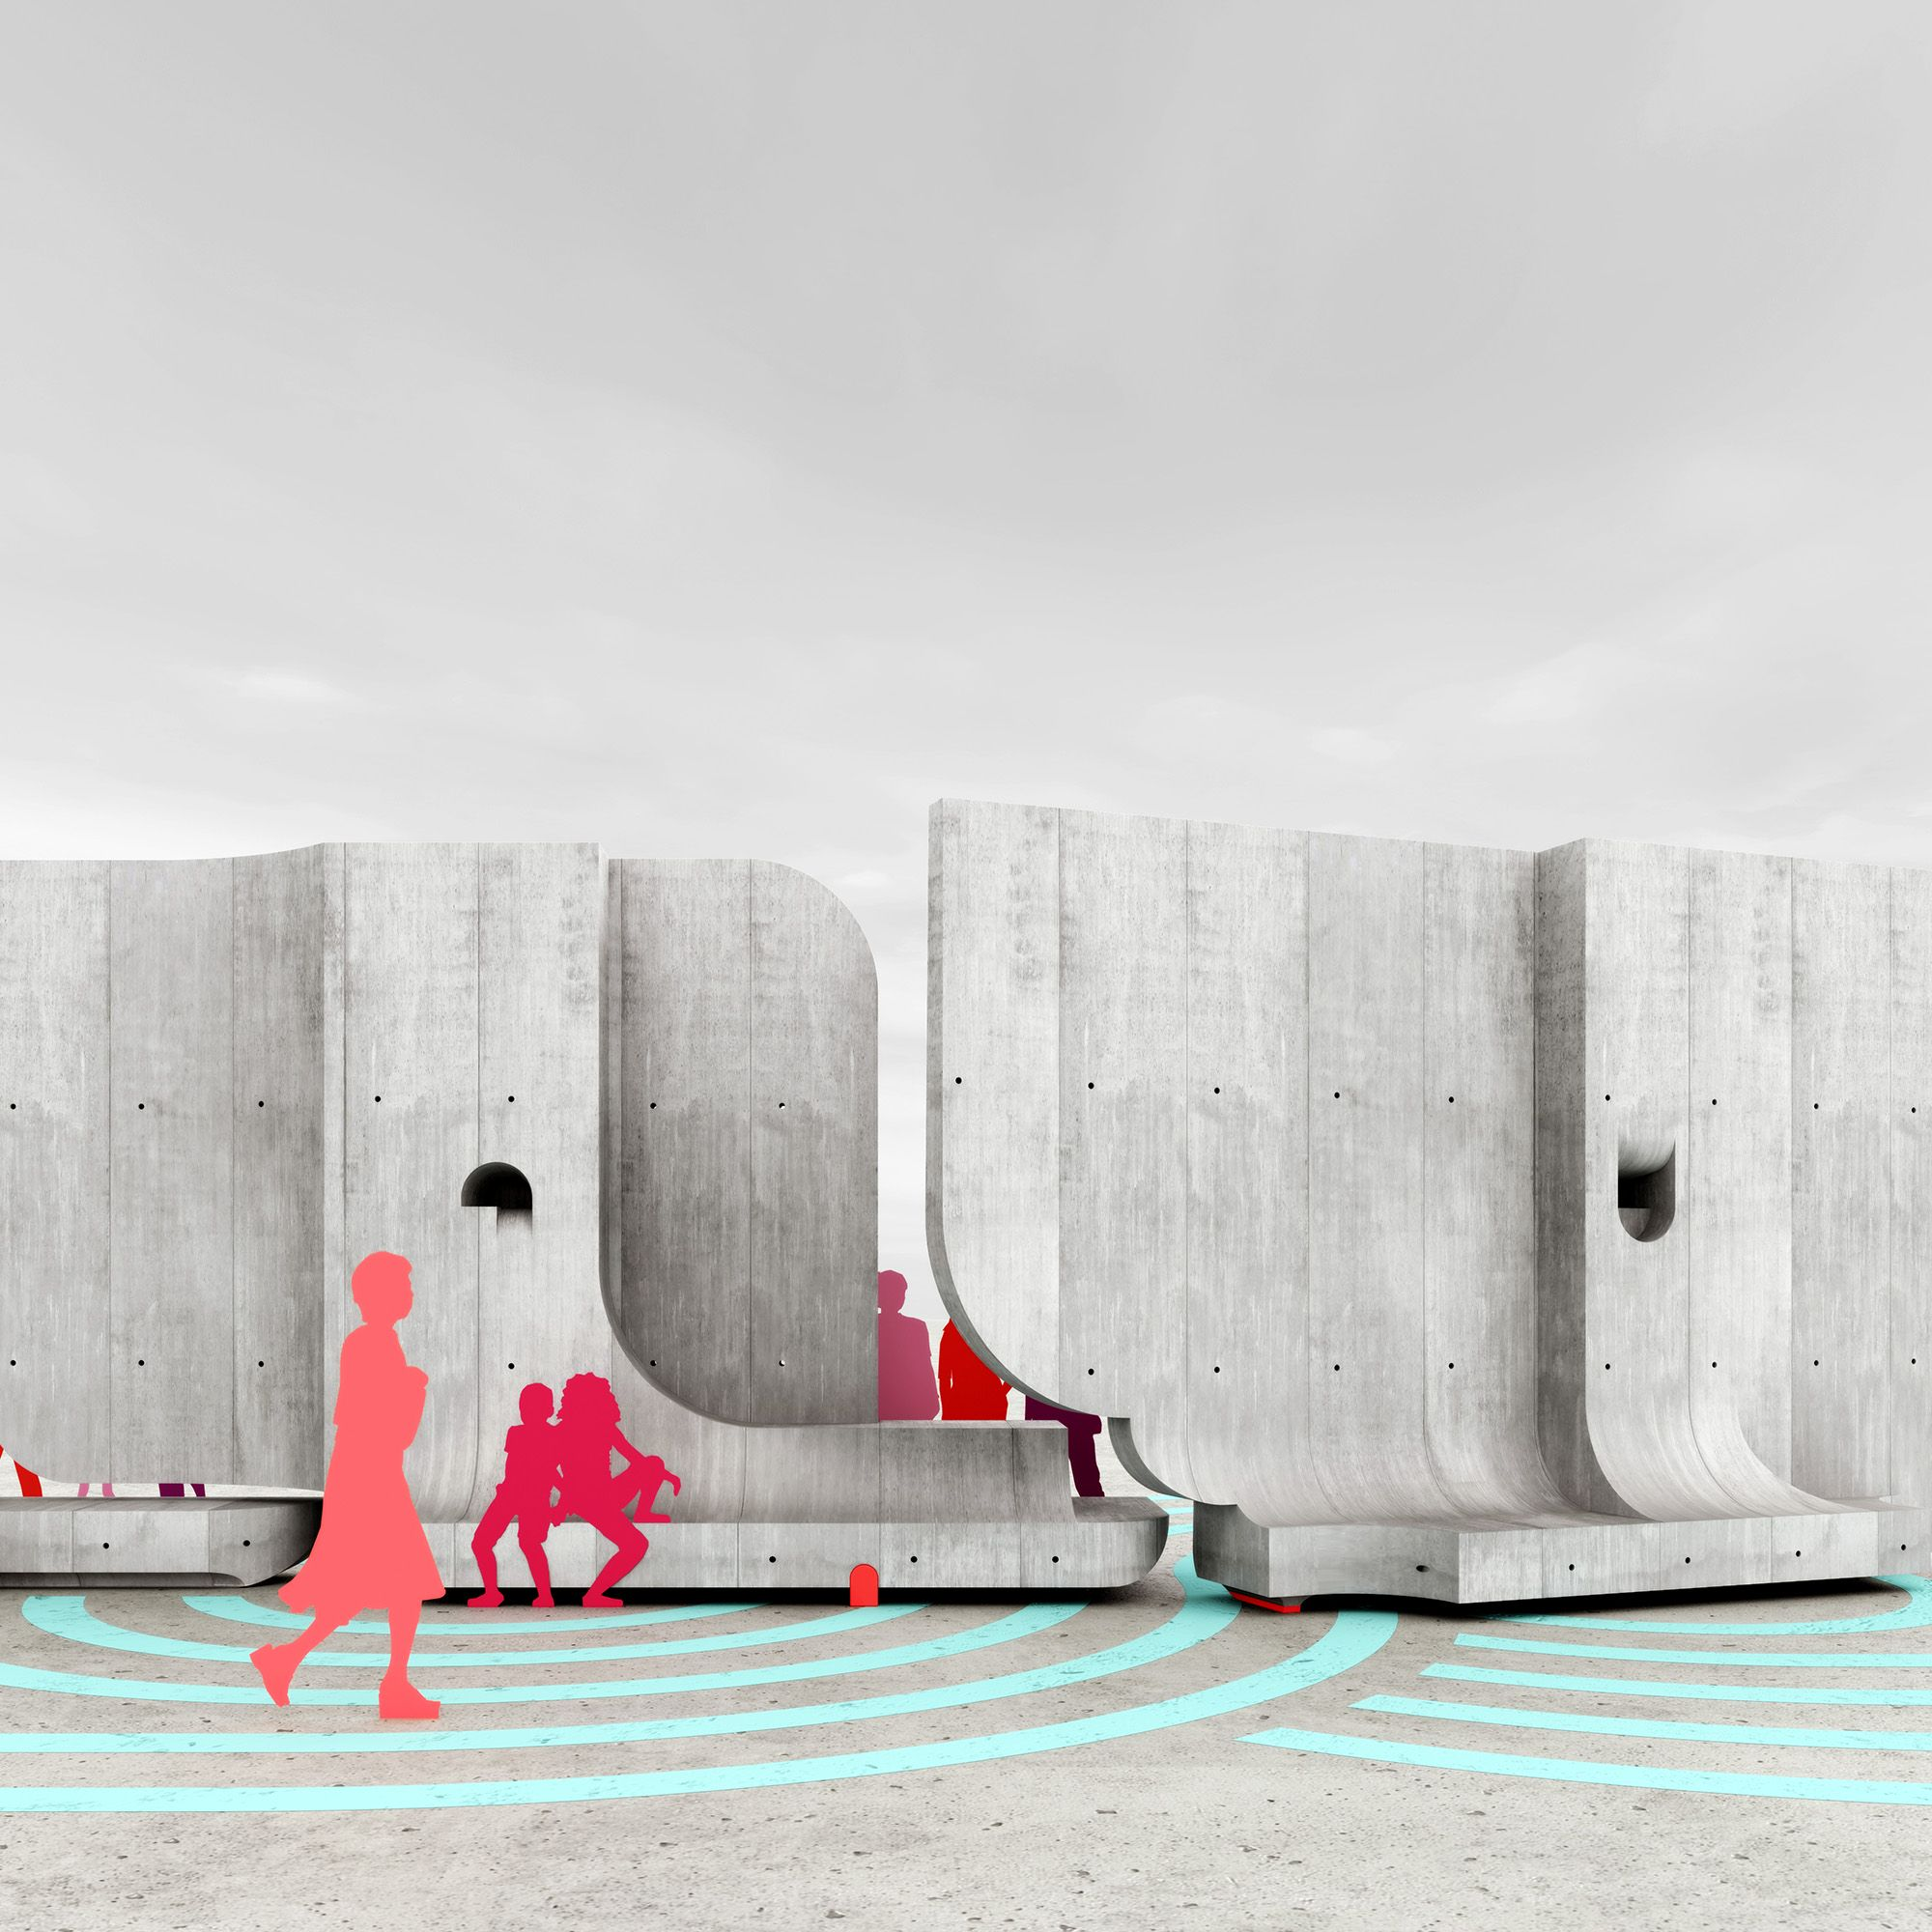 Rendering of a swinging concrete walls at AquíAquí in el paso